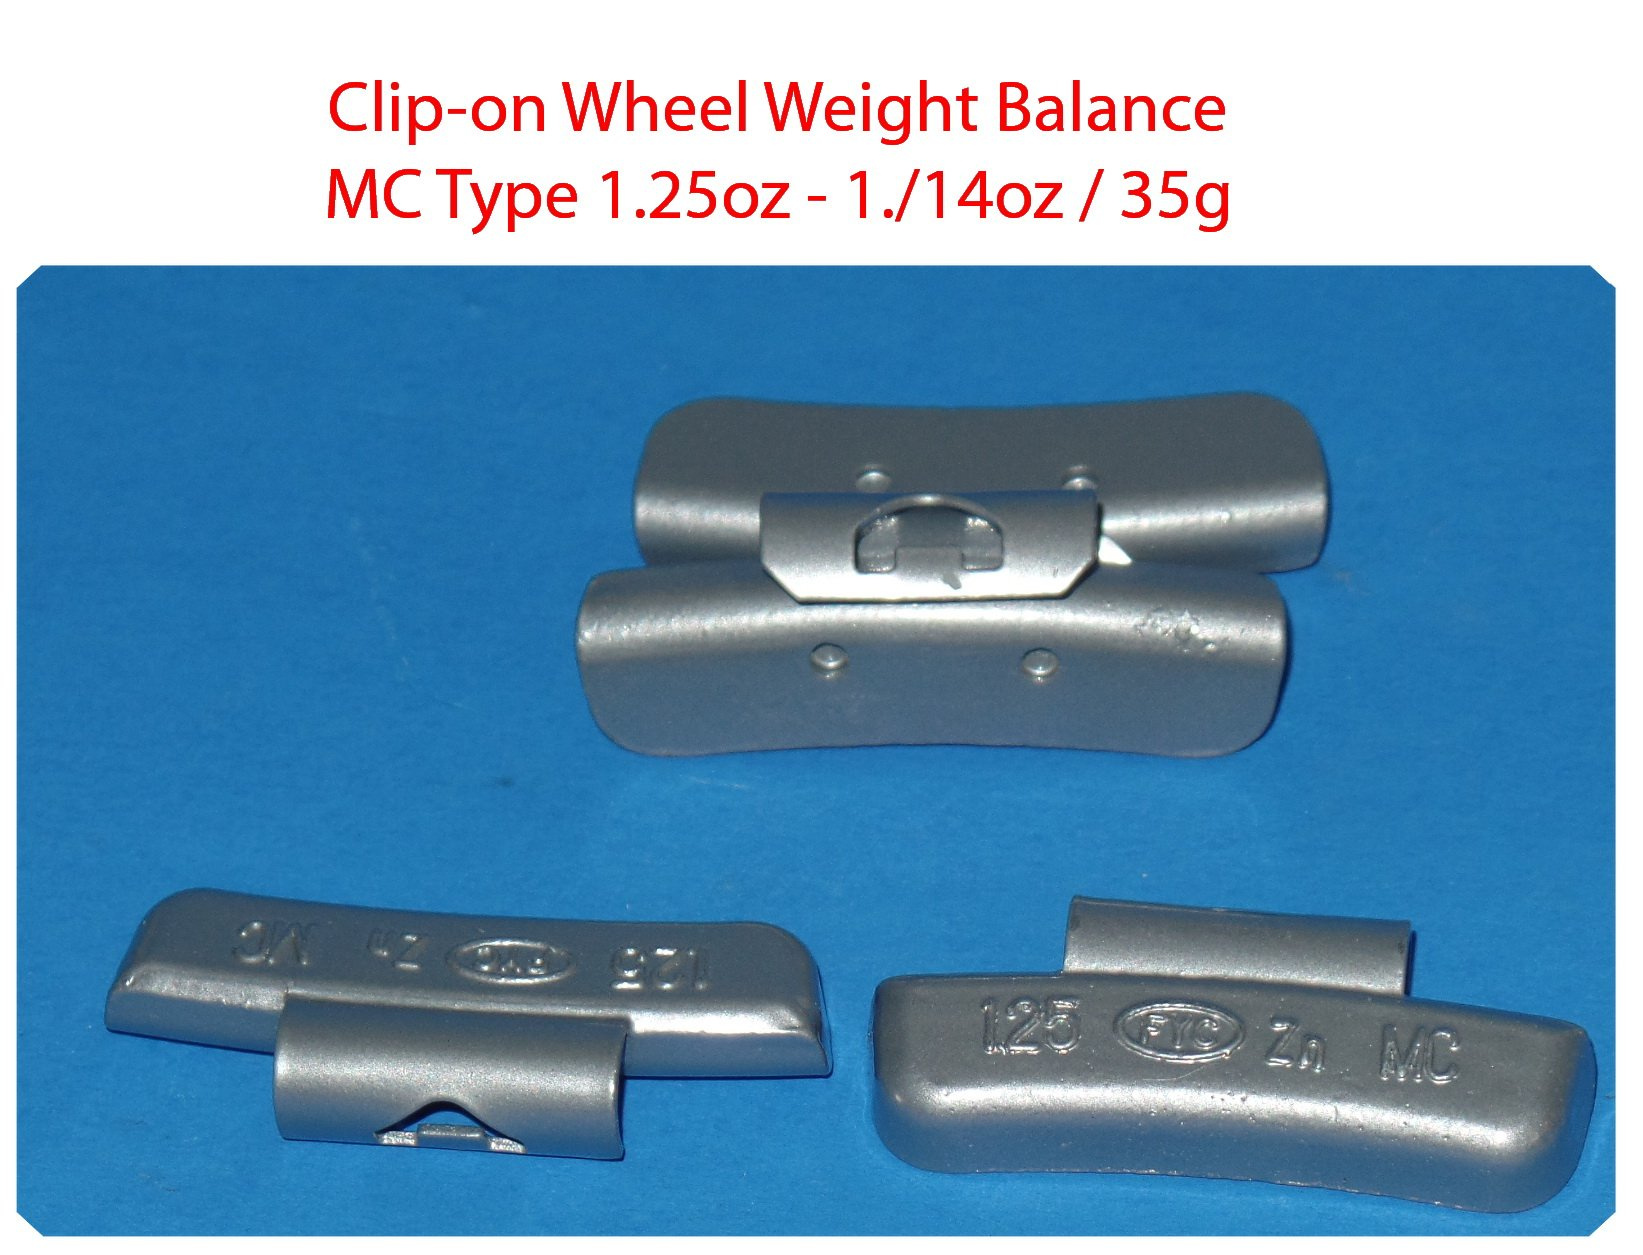 (1000 Pieces) ZN CLIP-ON WHEEL WEIGHT BALANCE 1.25 1.1/4oz MC Type Total 1250.00oz (Use for All Types of Alloy wheels On Passenger Cars , Trucks , Vans & Motorcycles) by VPro (Image #3)